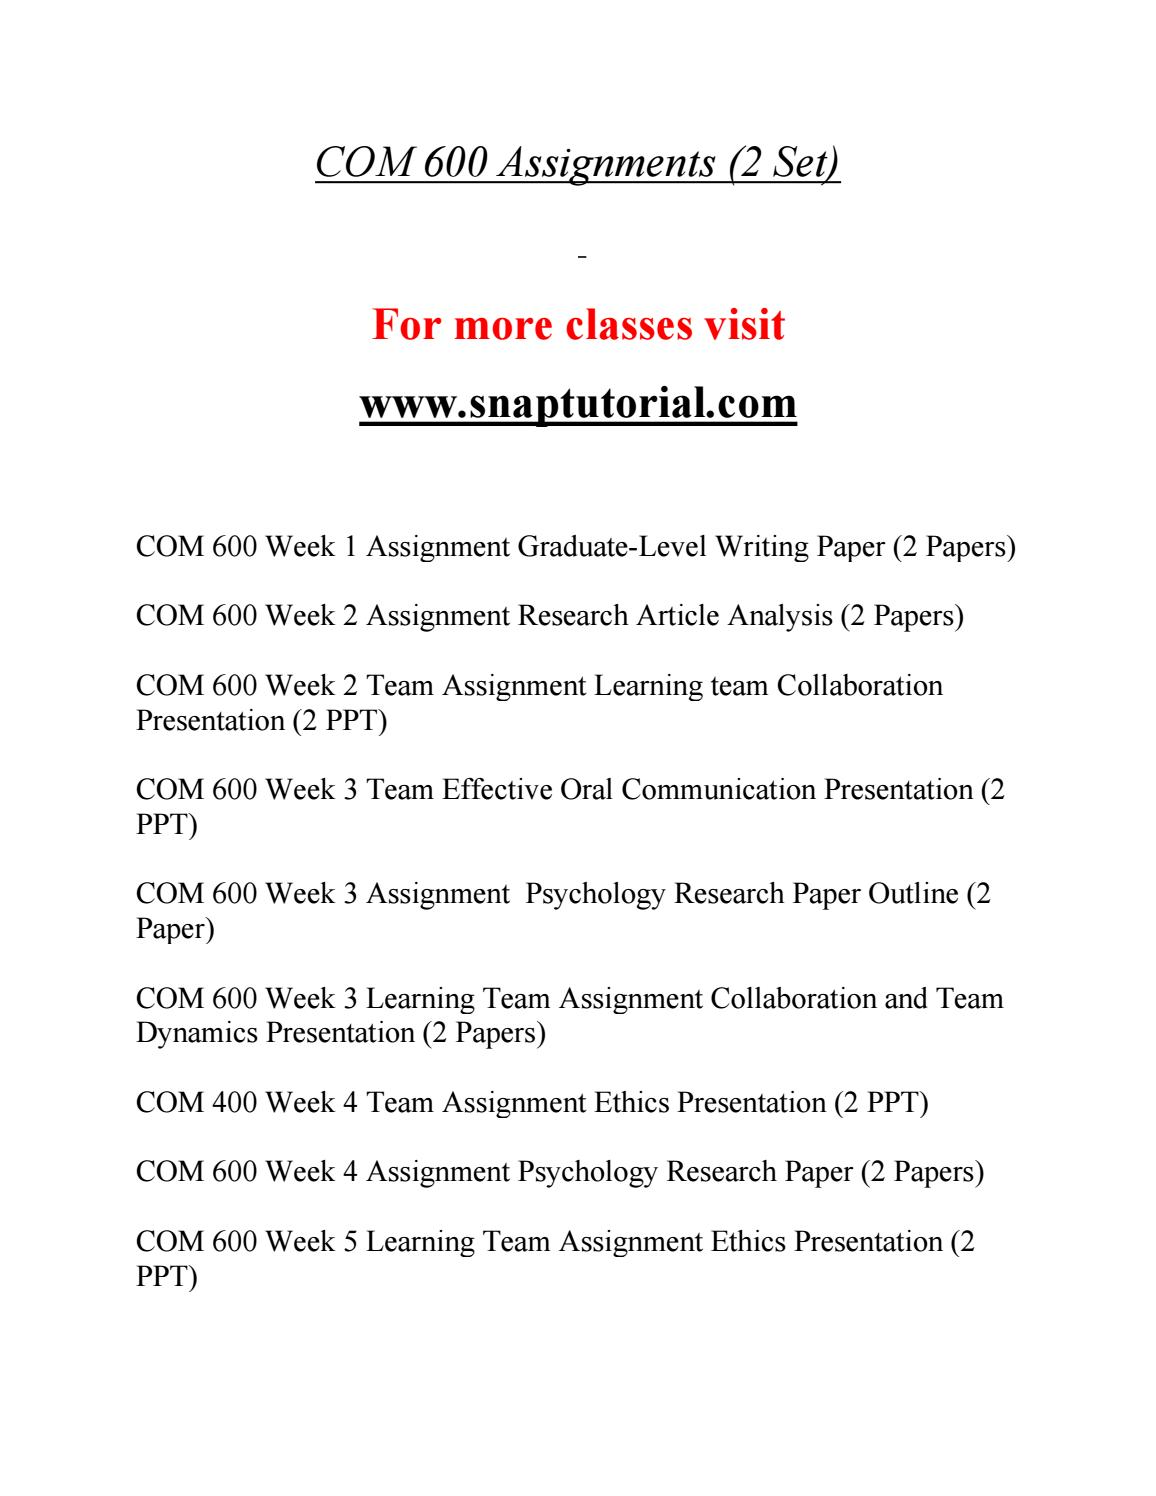 008 Psychology Research Paper Outline Com Page 1 Striking 600 Com/600 Full